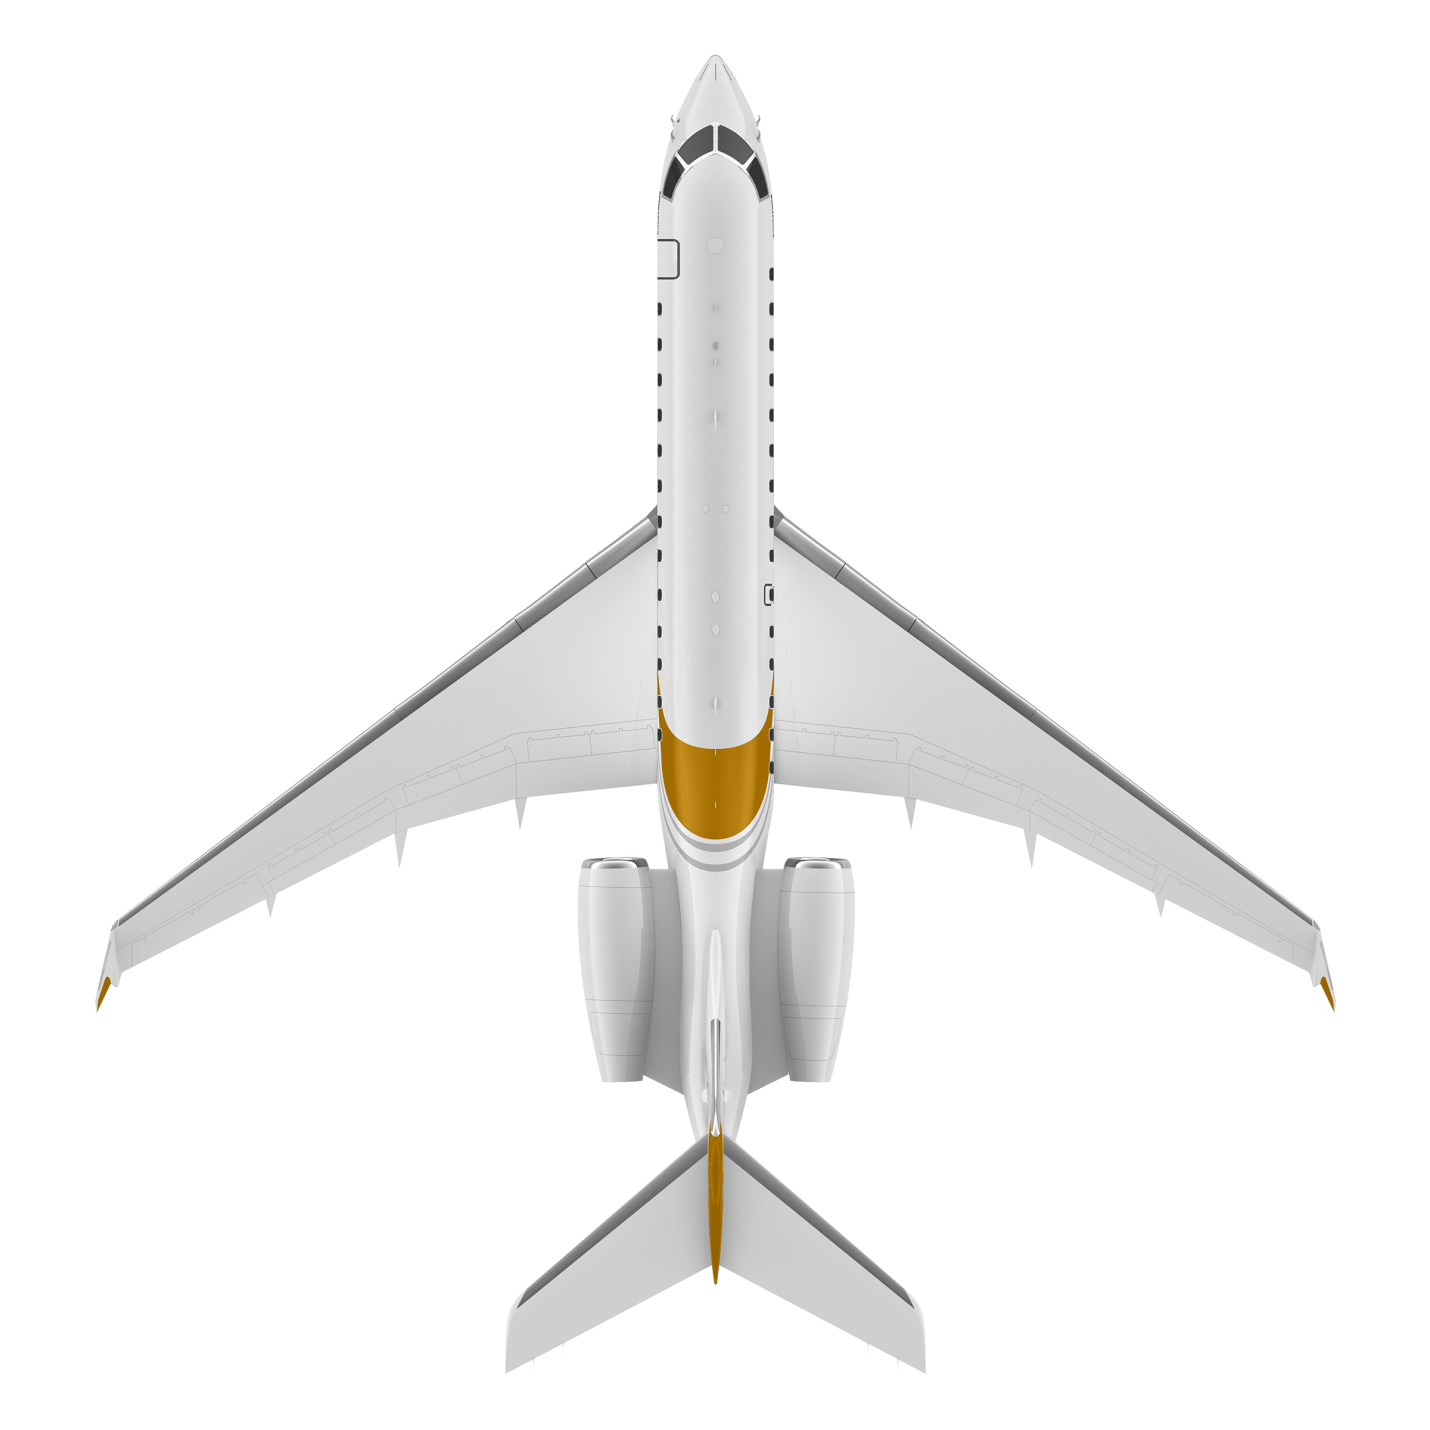 Global 6500 top view